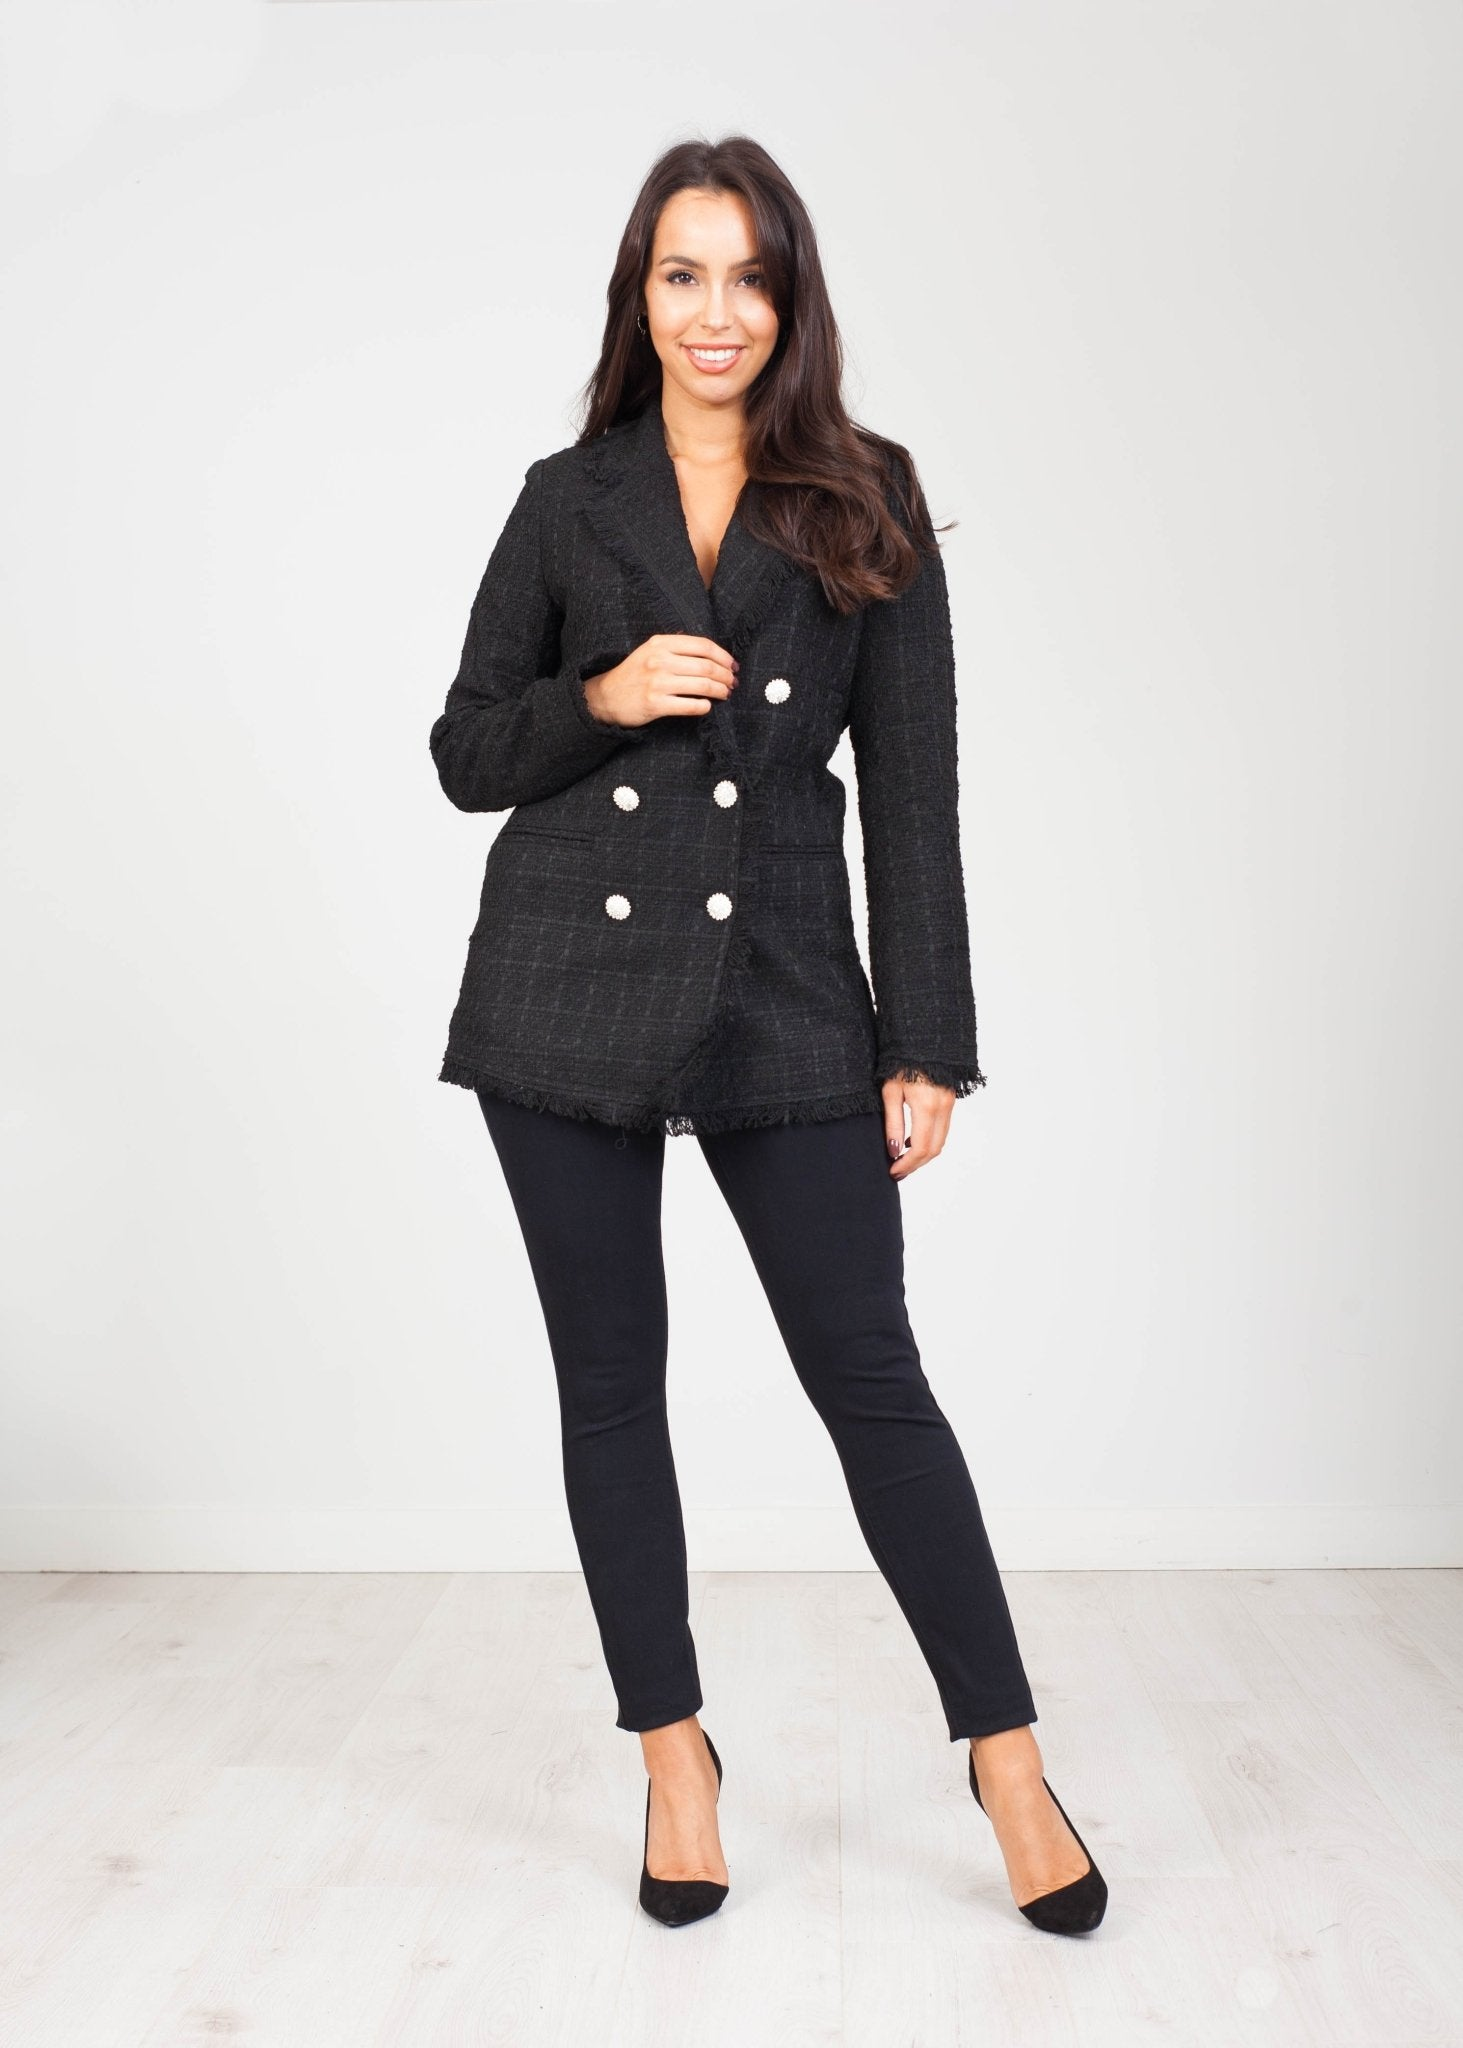 Arabella Tweed Blazer in Black - The Walk in Wardrobe